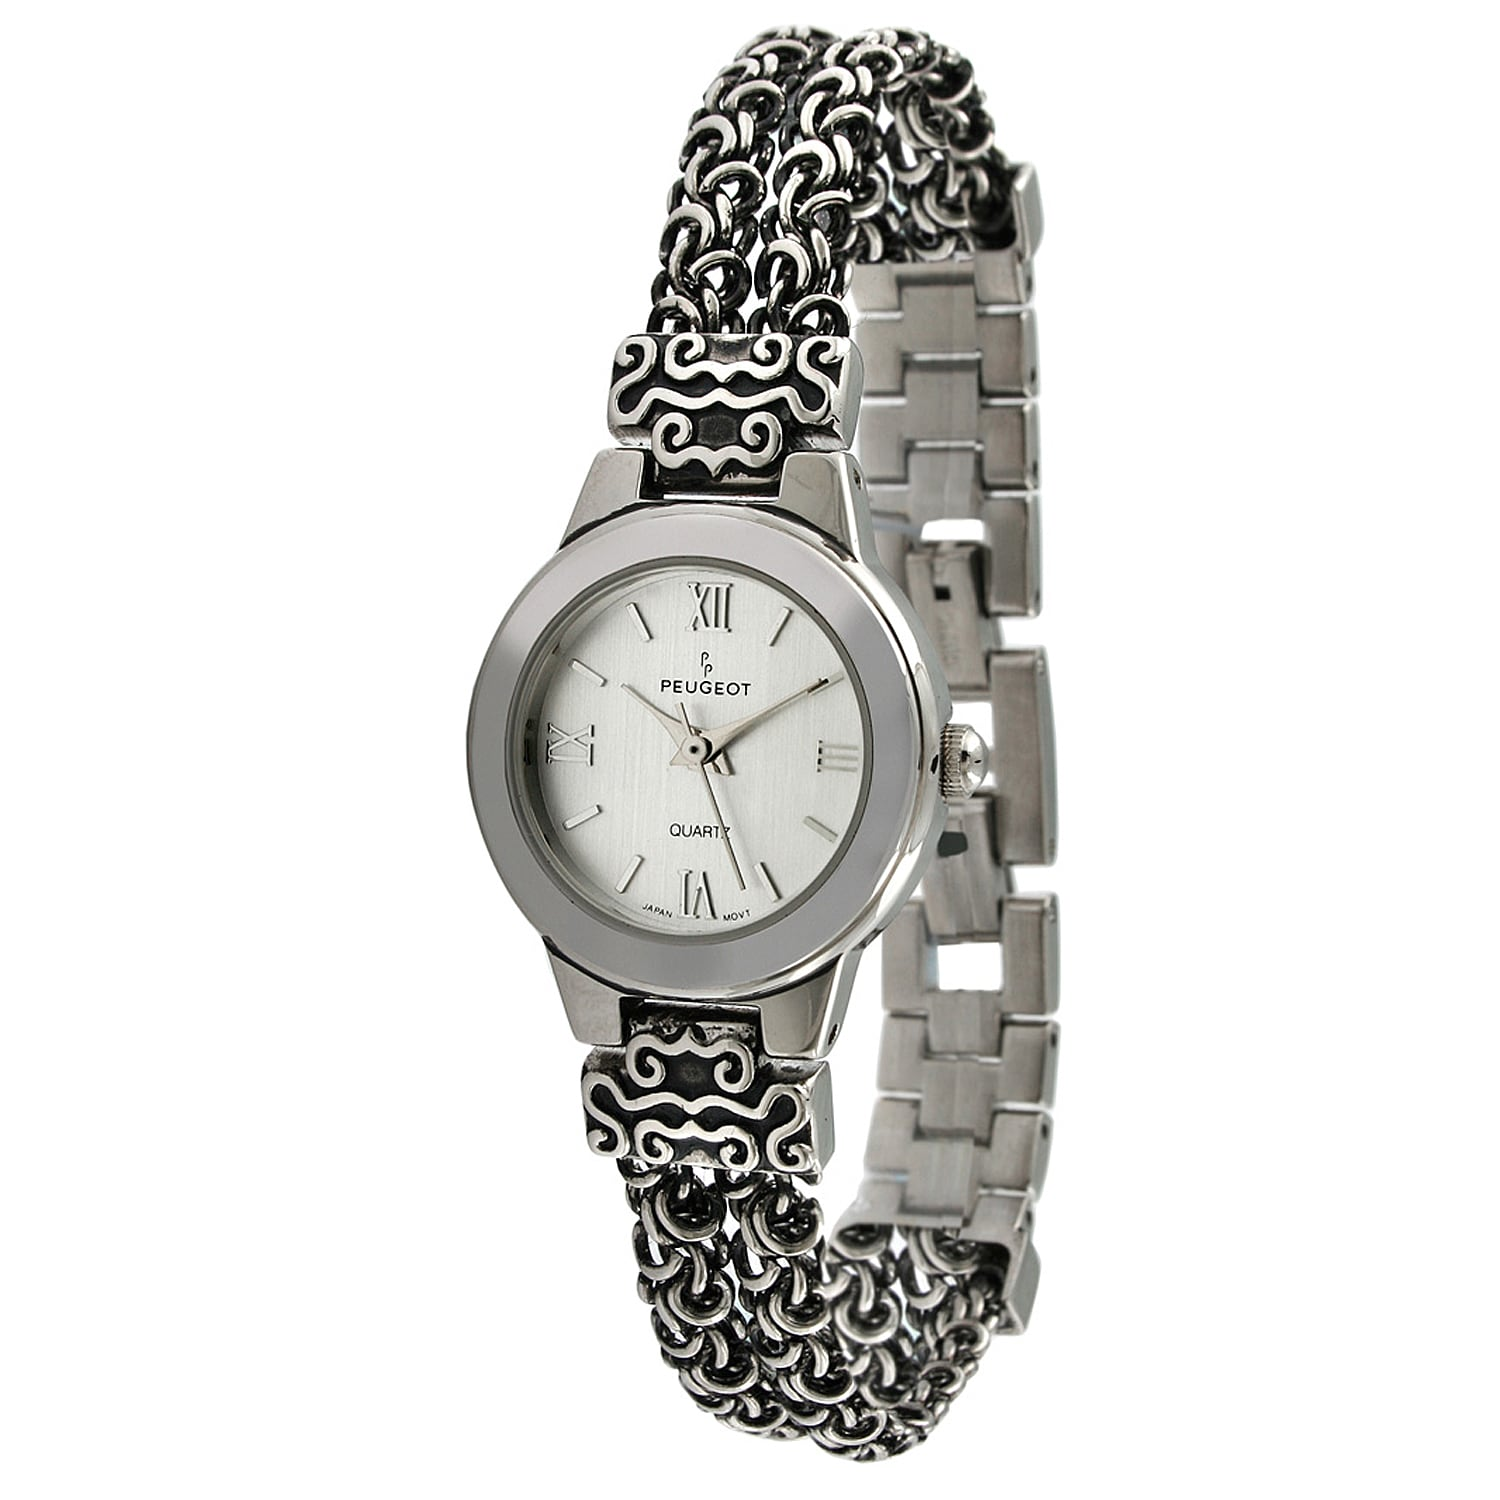 Peugeot Women's Antique Silvertone Chain Watch